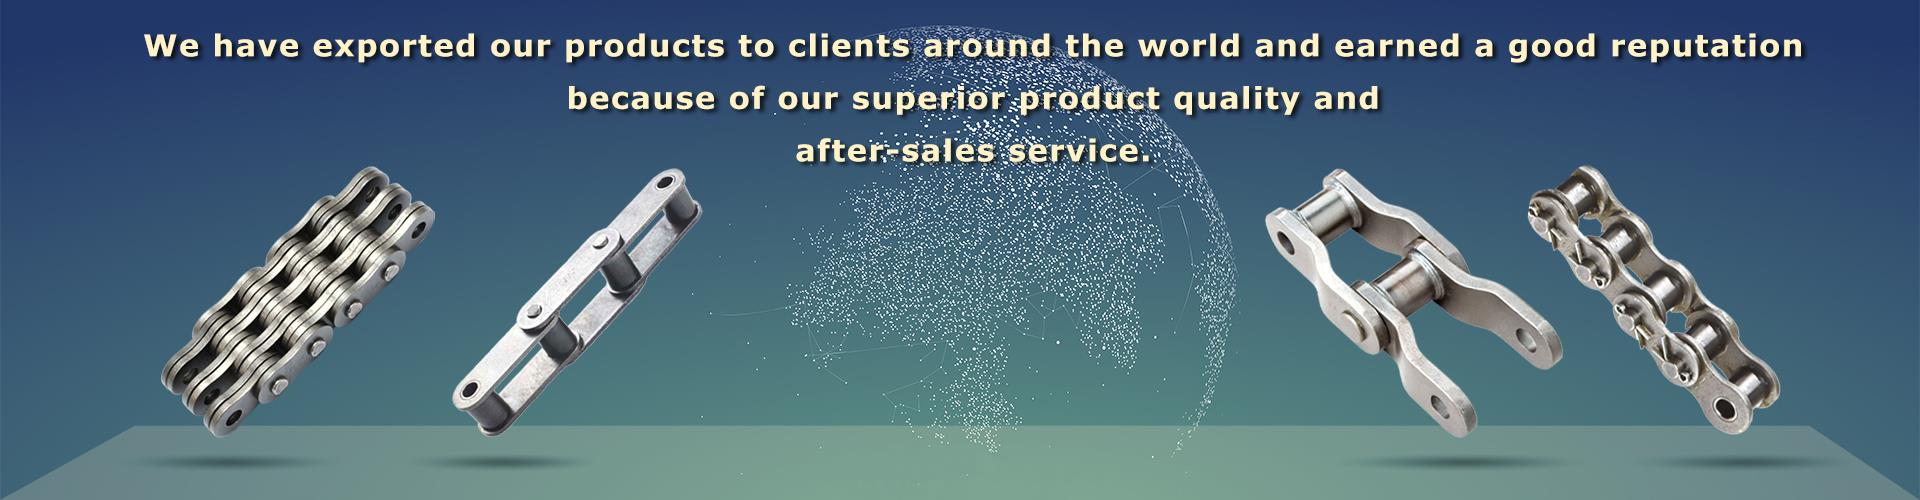 Best  made in China - replacement parts -  in Antwerp Belgium  Seller Spiral Bevel Gear Precision Sprocket Customized with ce certificate top quality low price